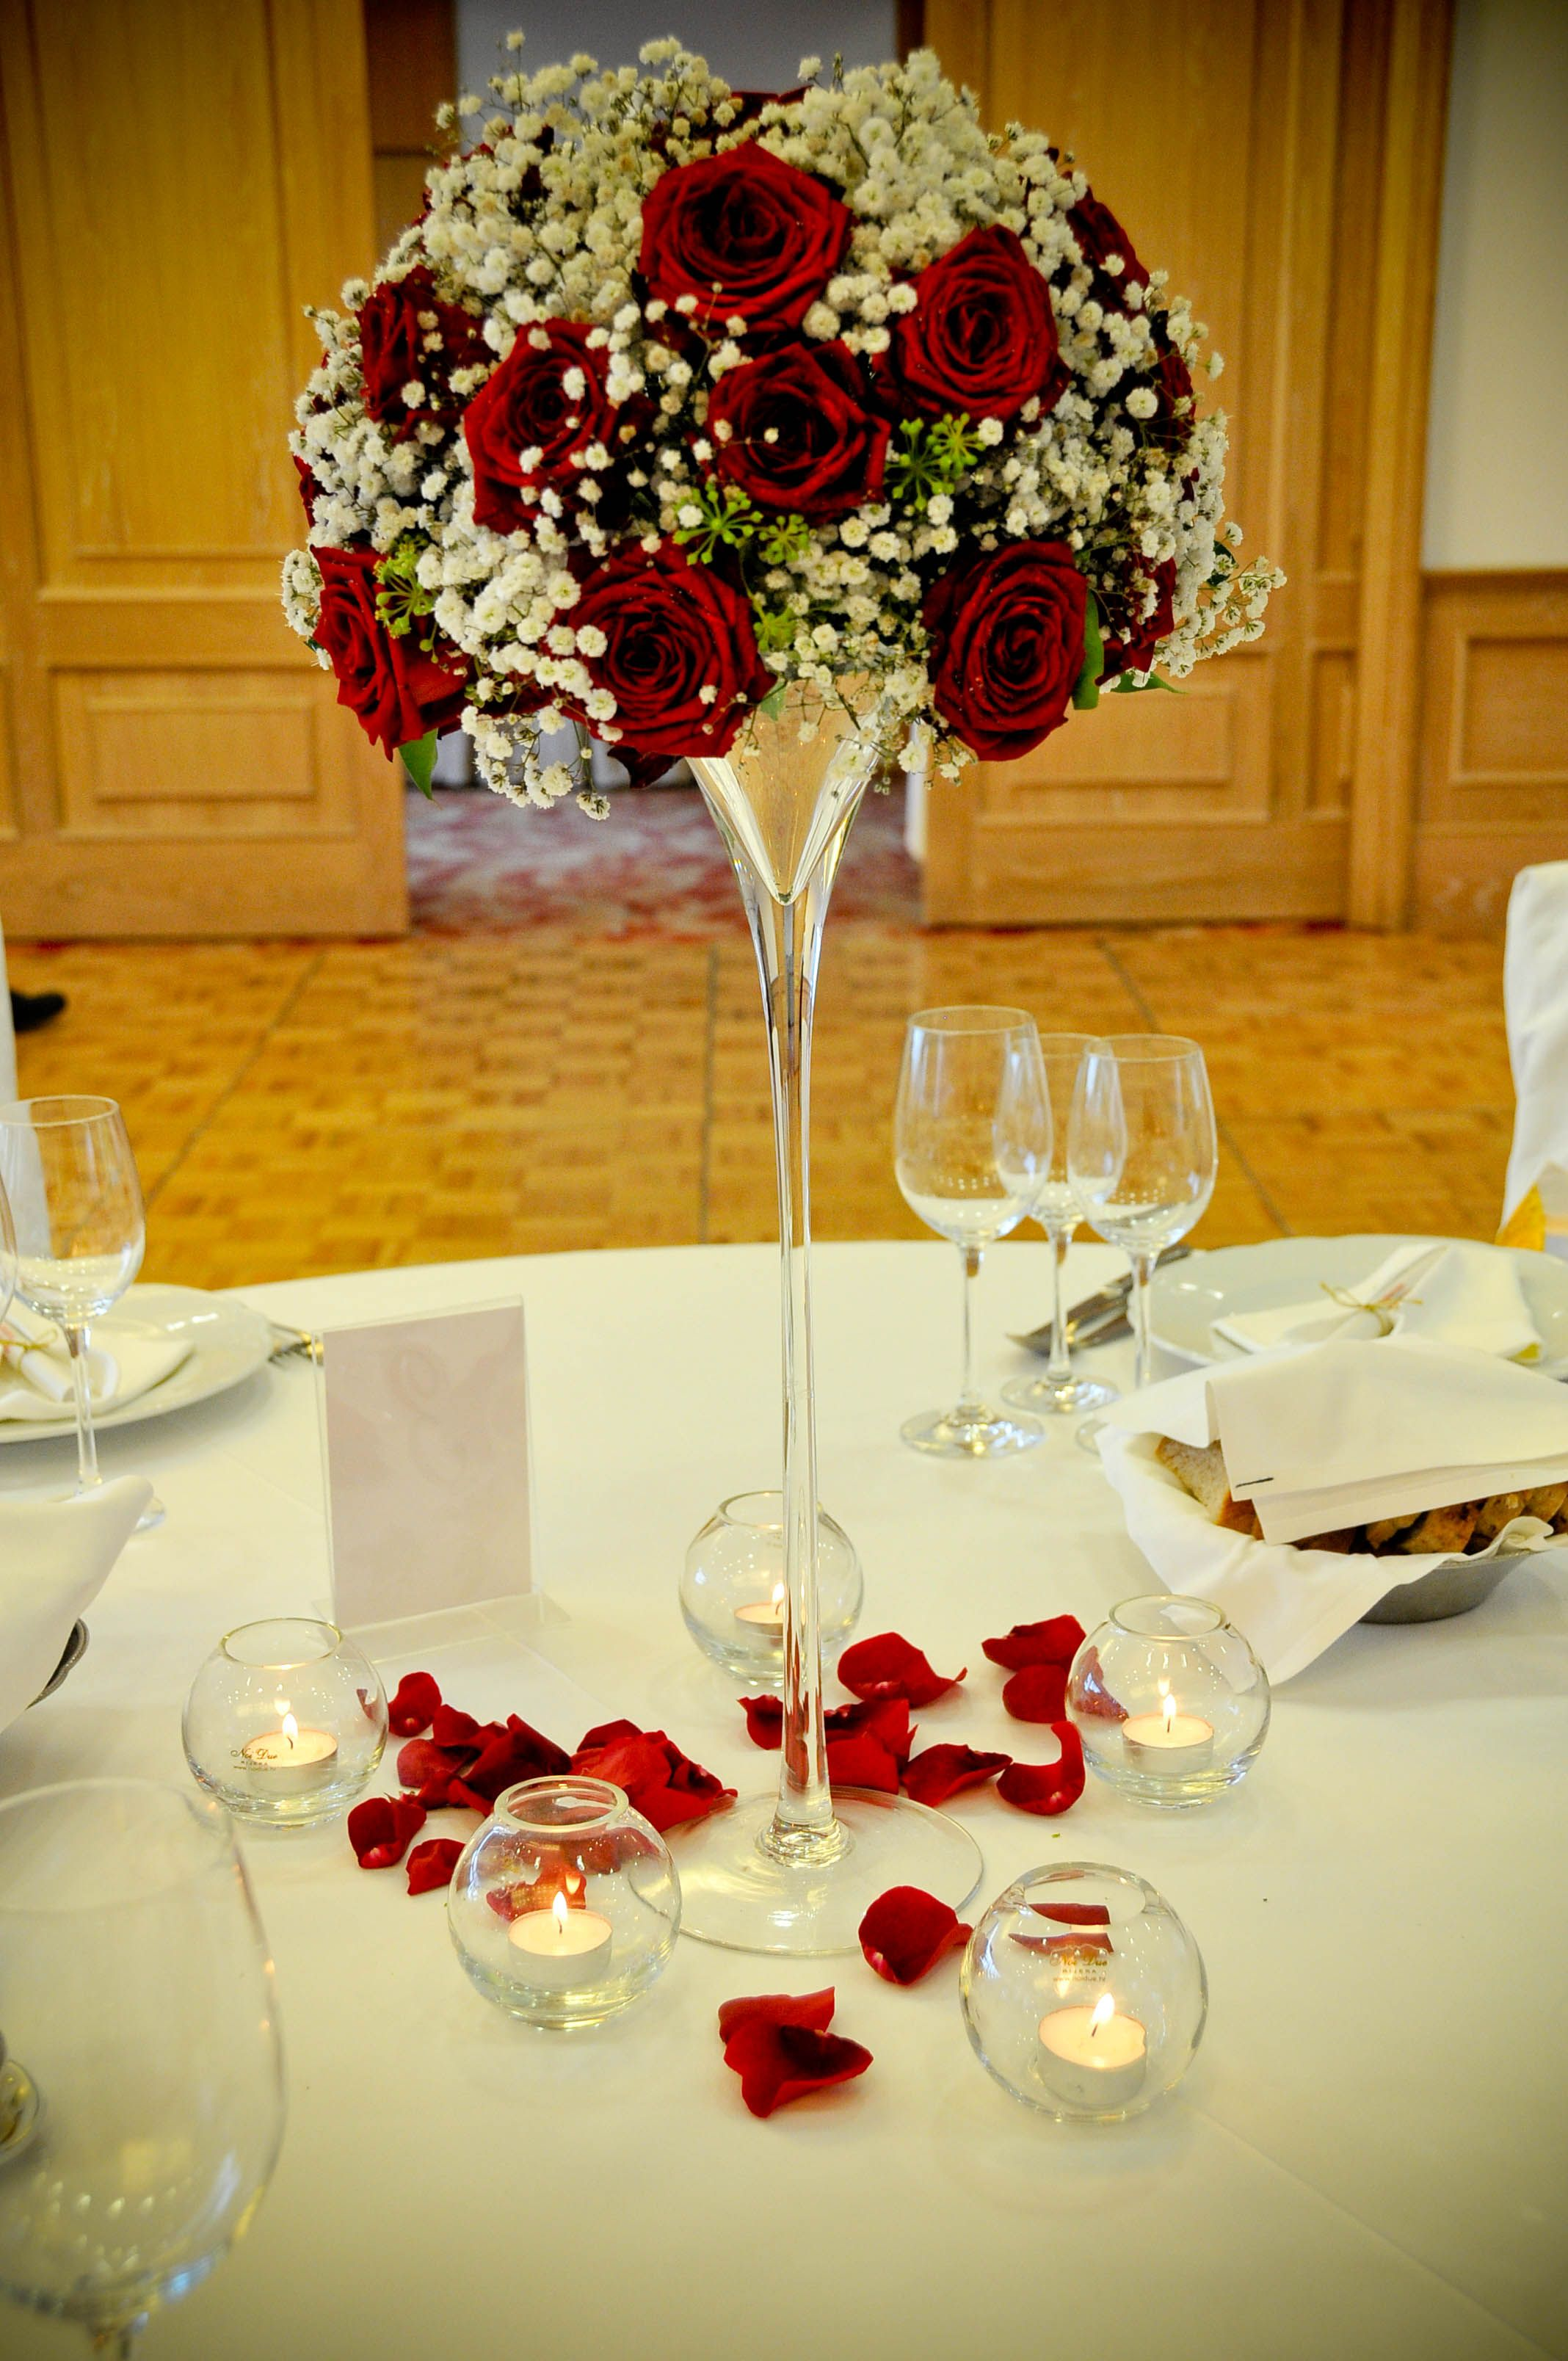 Gorgeous red roses in martini vases supplied by noi due rijeka gorgeous red roses in martini vases supplied by noi due rijeka reviewsmspy